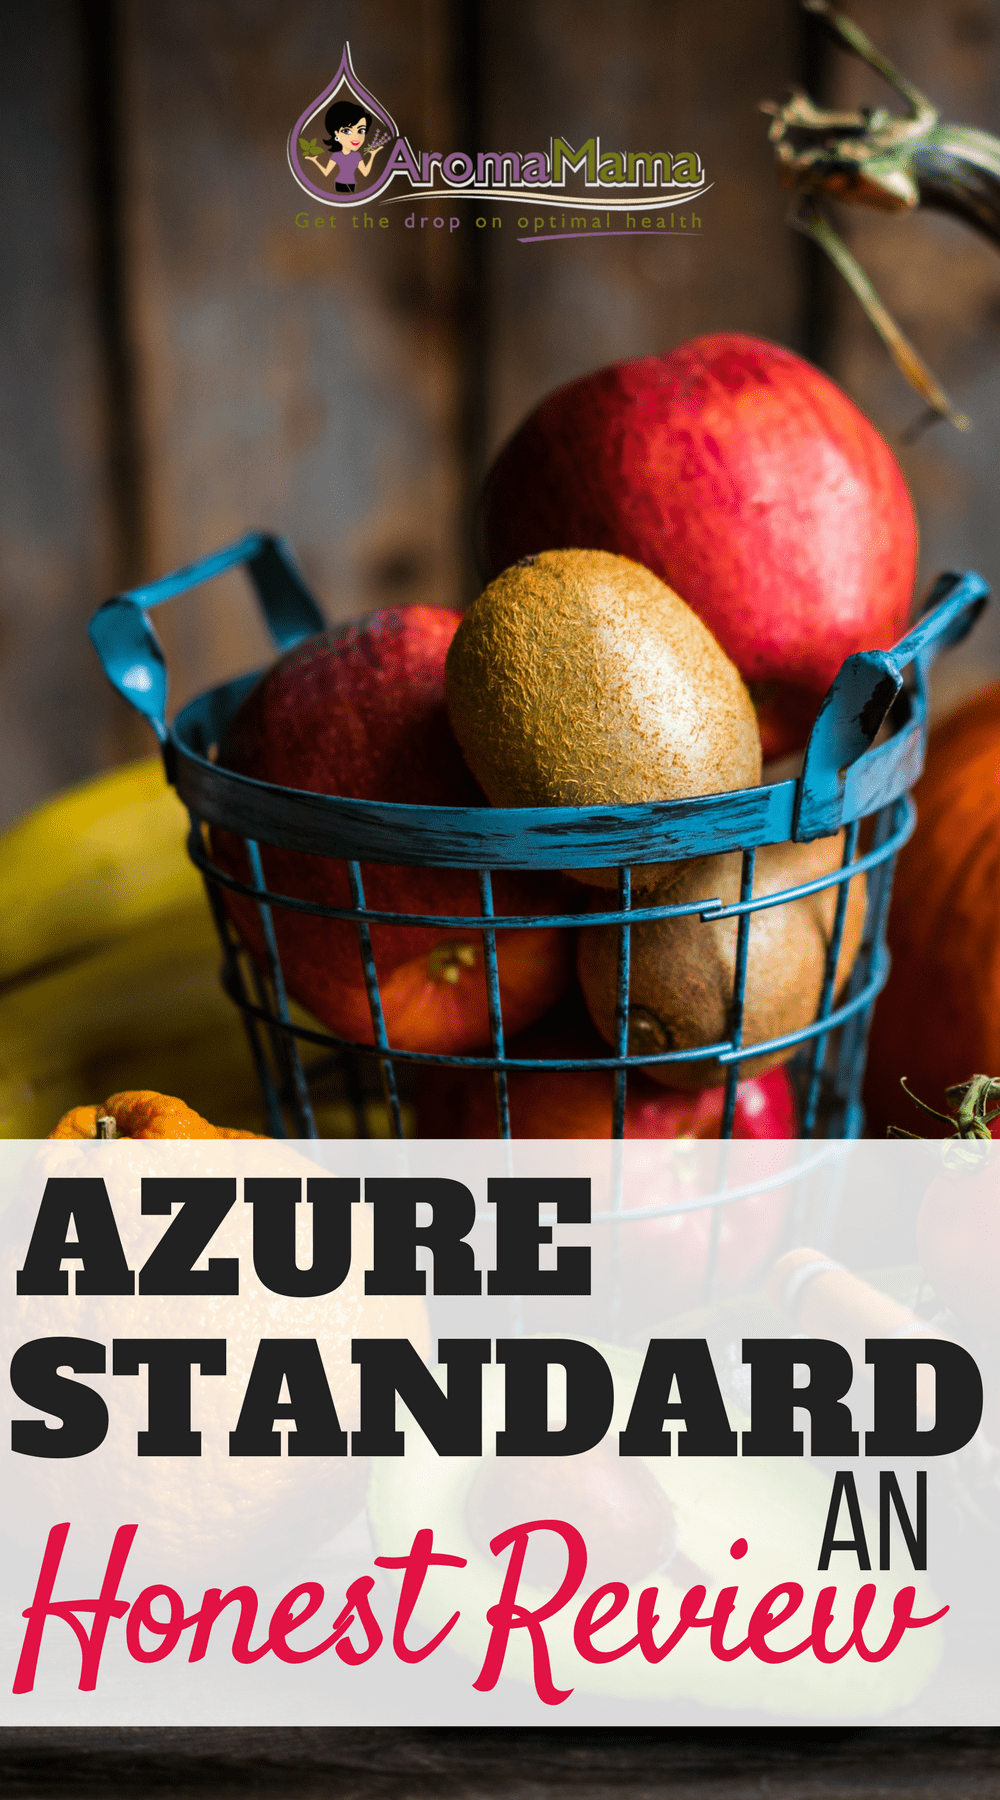 Azure Standard is a natural and organic food distributor providing the highest quality, discount prices, and value to their customers.